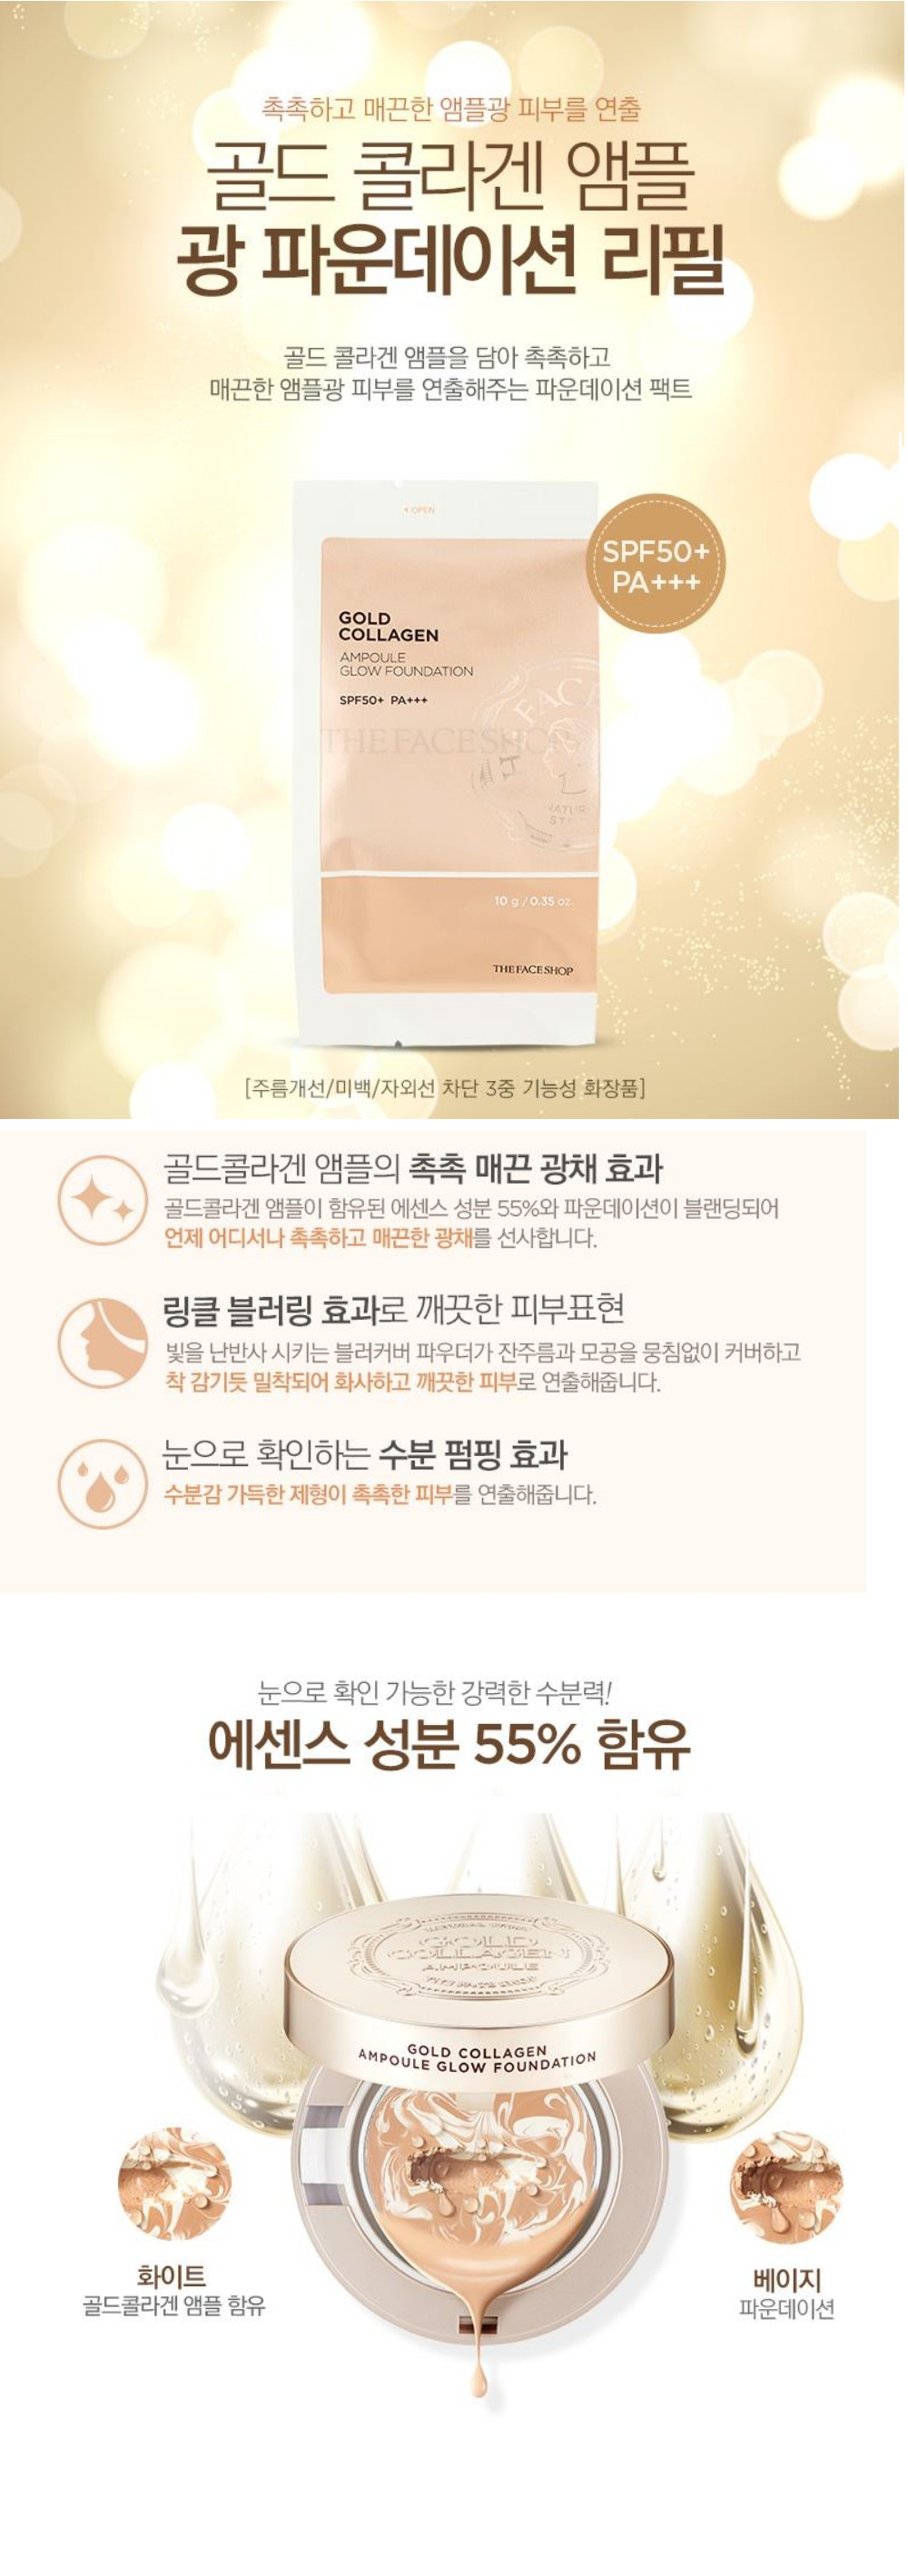 The Face Shop Gold Collagen Ampoule Glow Foundation Refill korean cosmetic makeup product online shop malaysia china macau1